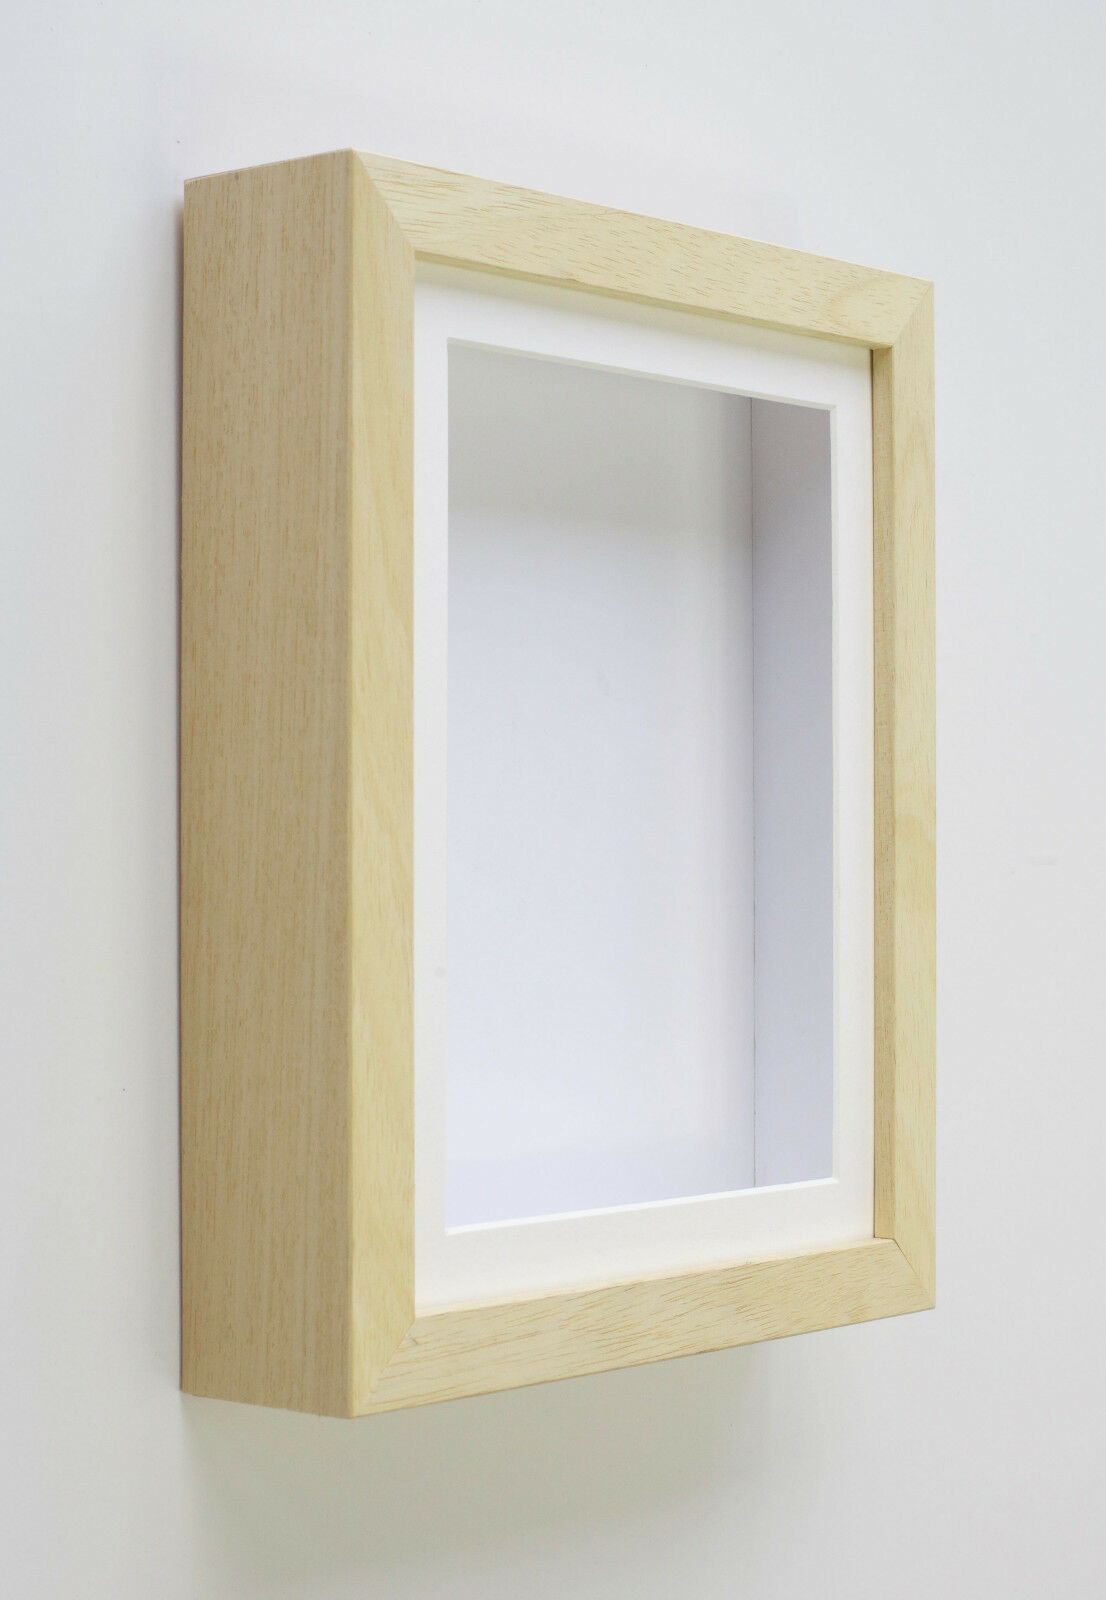 Wooden Box Frames Deep Shadow For Baby